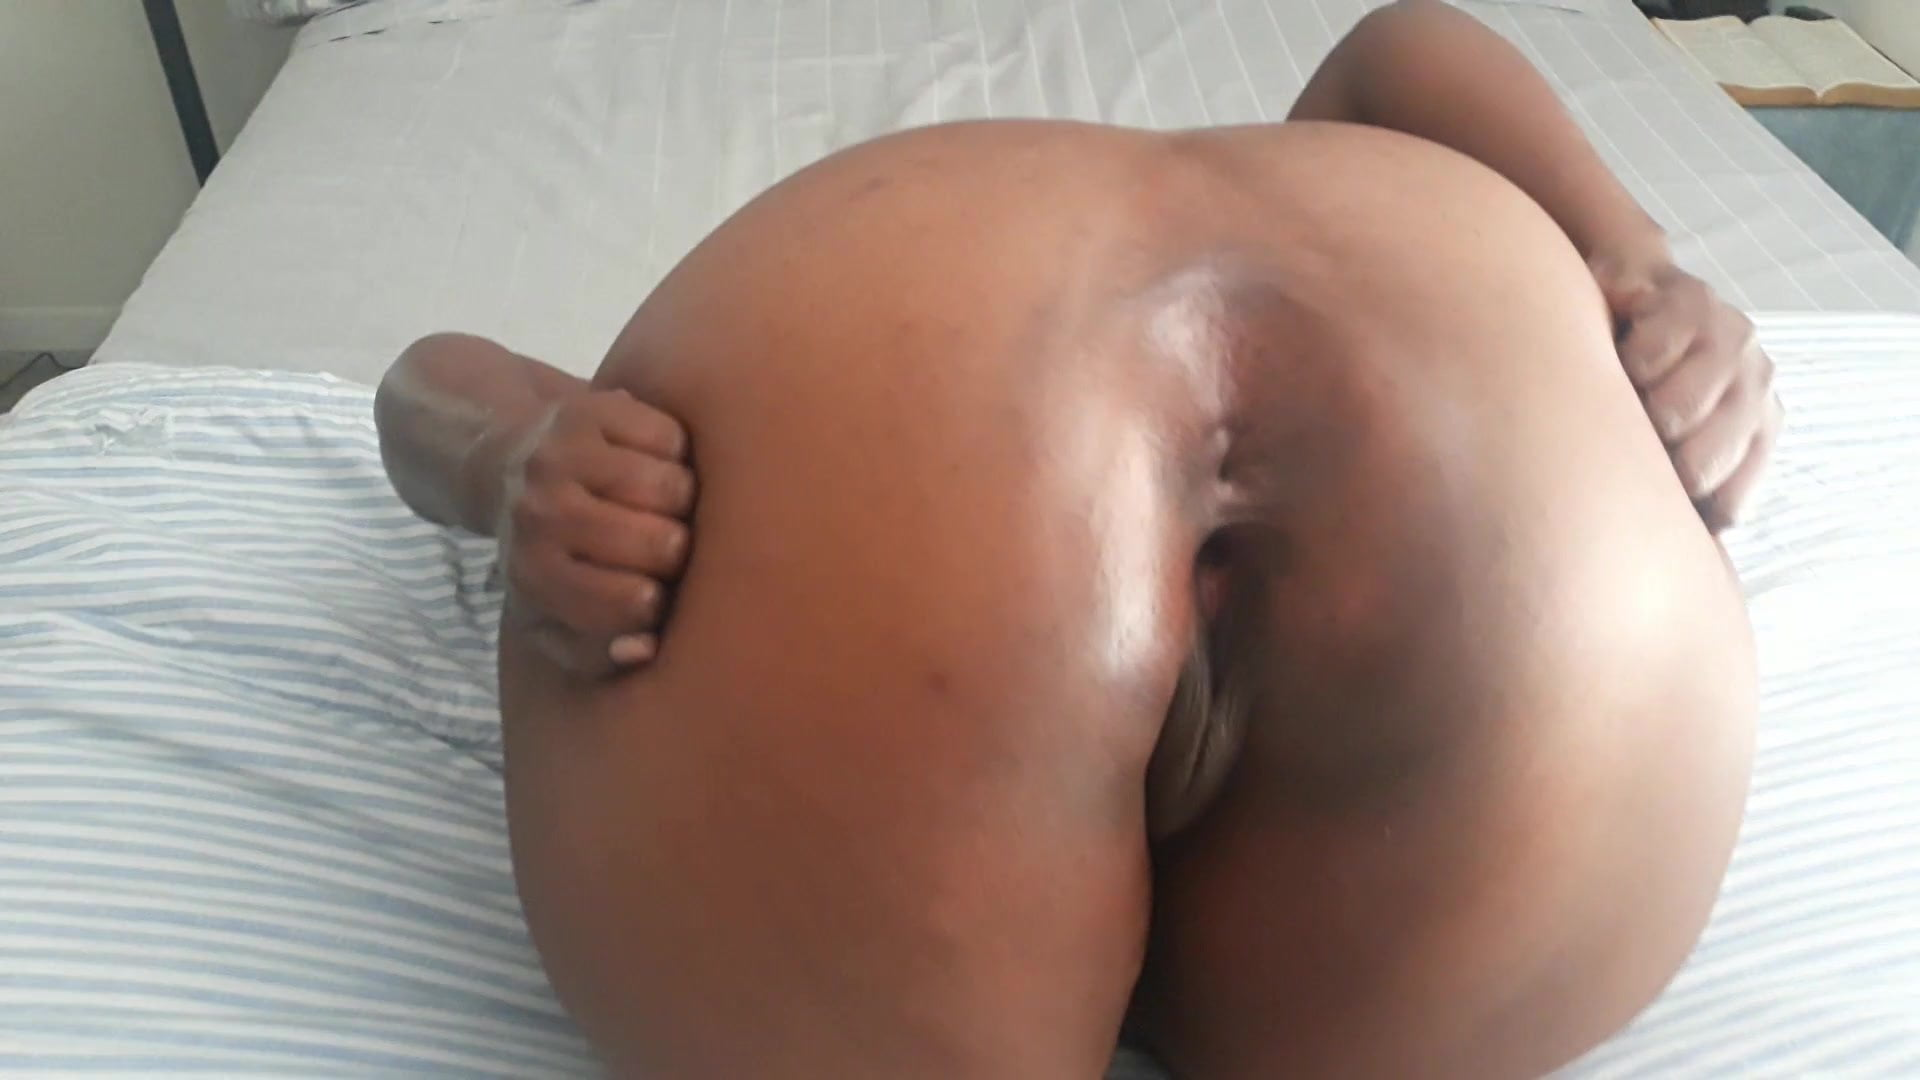 Big tits girl having sex video